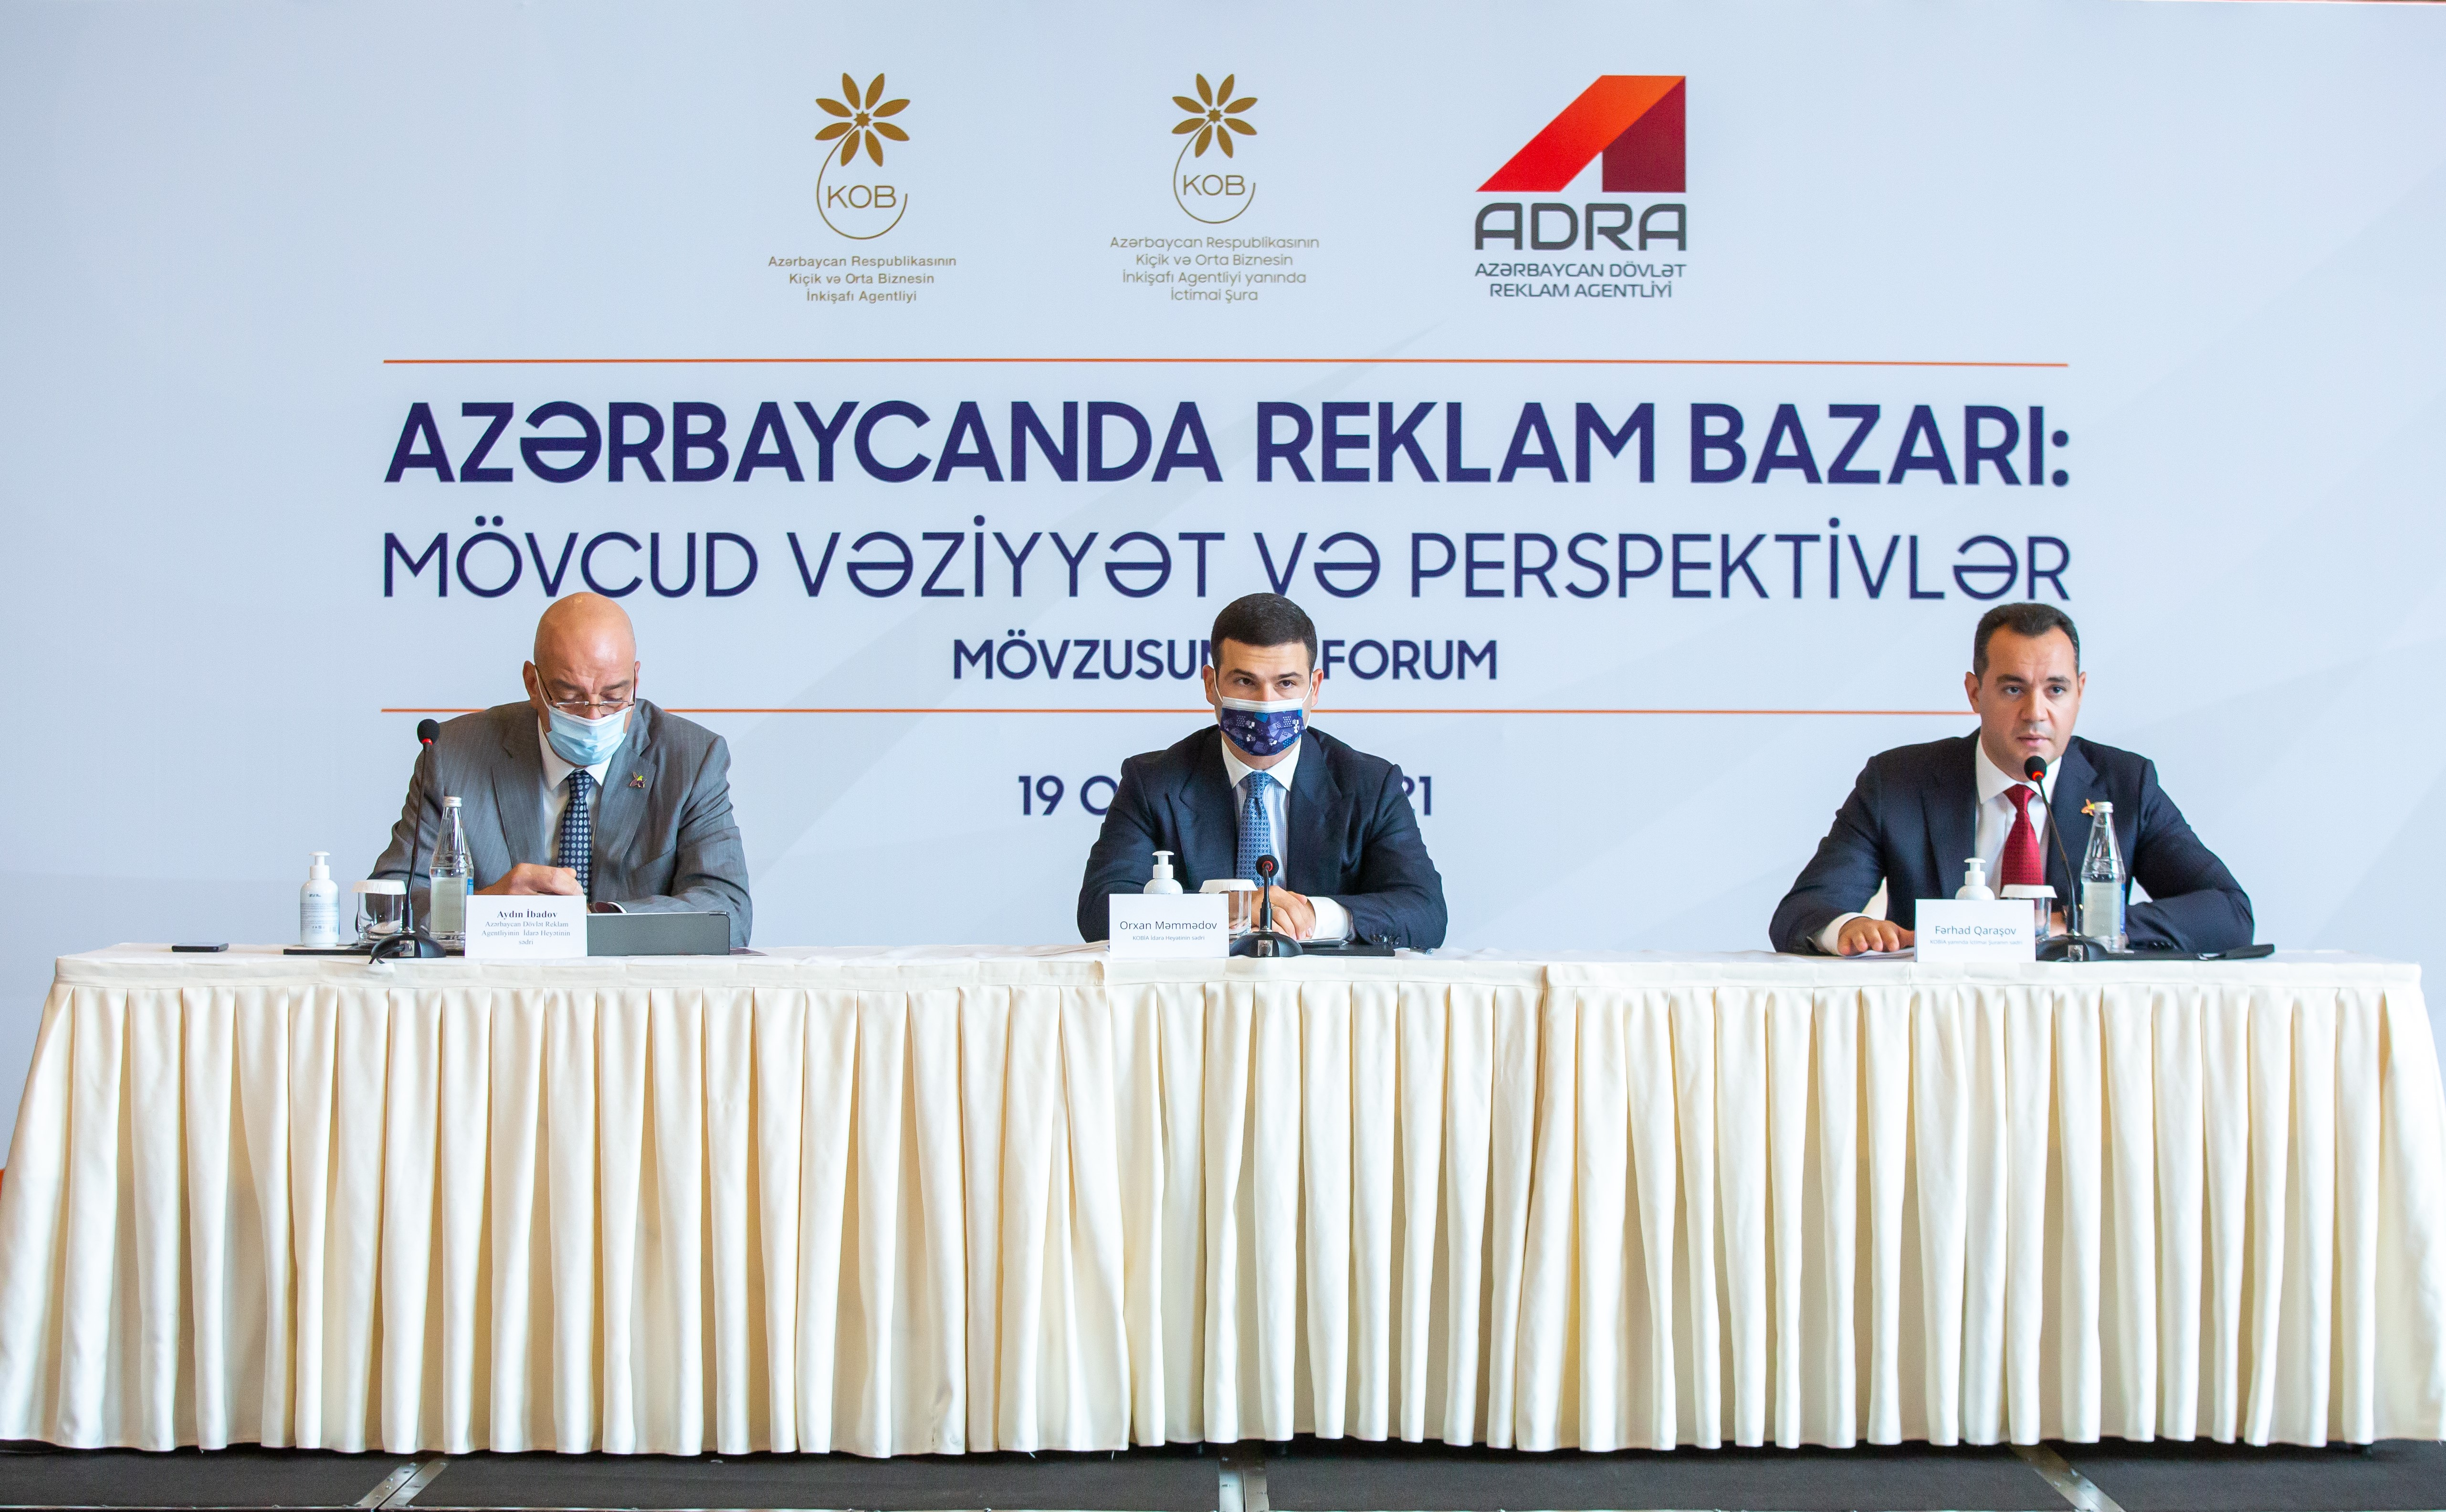 The current situation in the Azerbaijani advertising market discussed